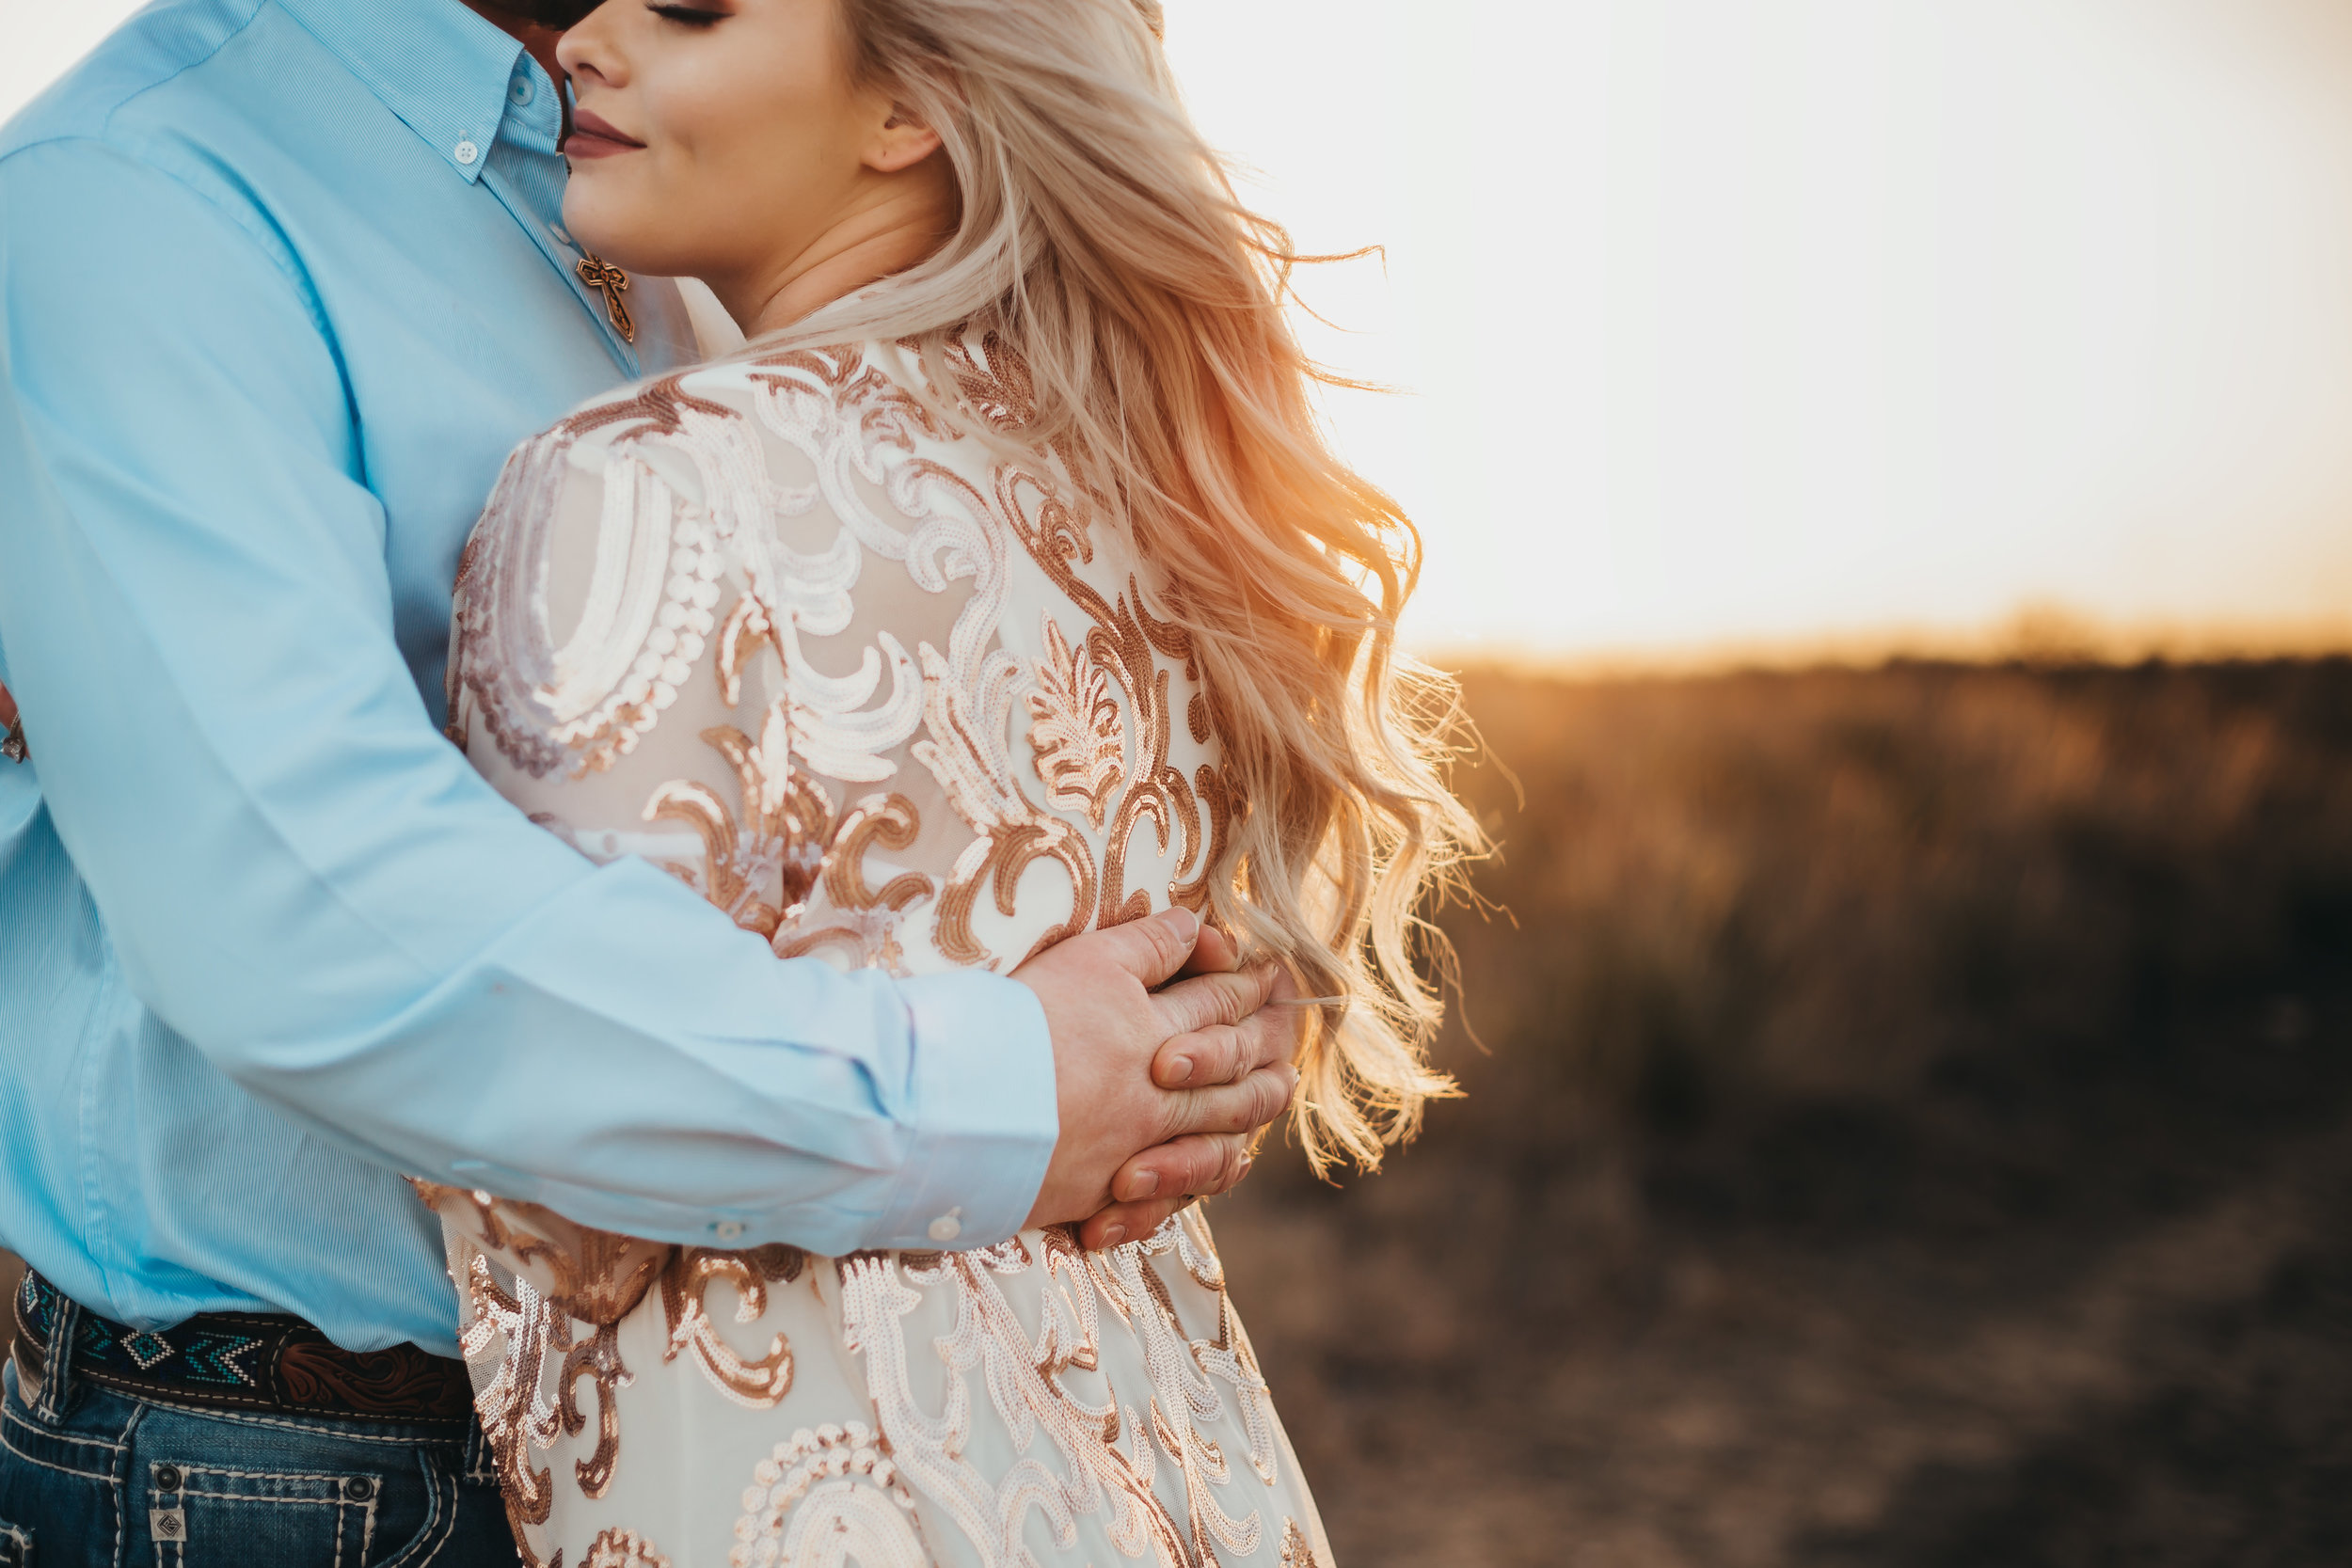 Zoomed in photo accenting the lighting and wardrobe including a blue pearl snap collared shirt and sequin jacket #engagementphotos #engaged #personality #amarillotexas #engagementphotographer #lifestylephotos #amarillophotographer #locationchoice #texasengagementphotos #engagment #tealawardphotography #westernstyle